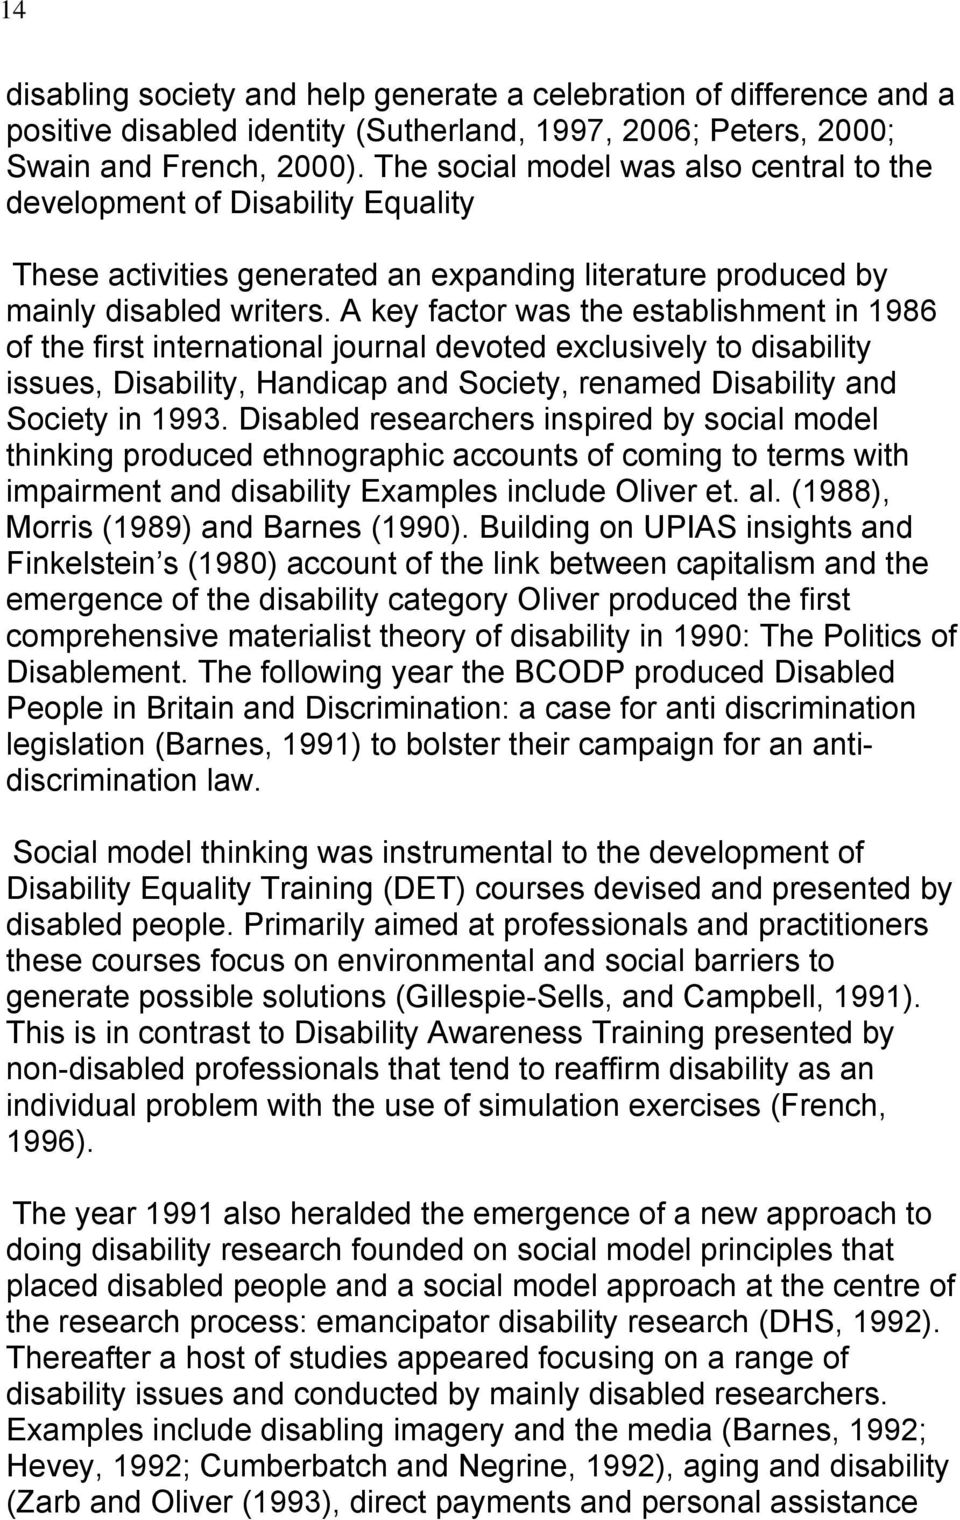 A key factor was the establishment in 1986 of the first international journal devoted exclusively to disability issues, Disability, Handicap and Society, renamed Disability and Society in 1993.